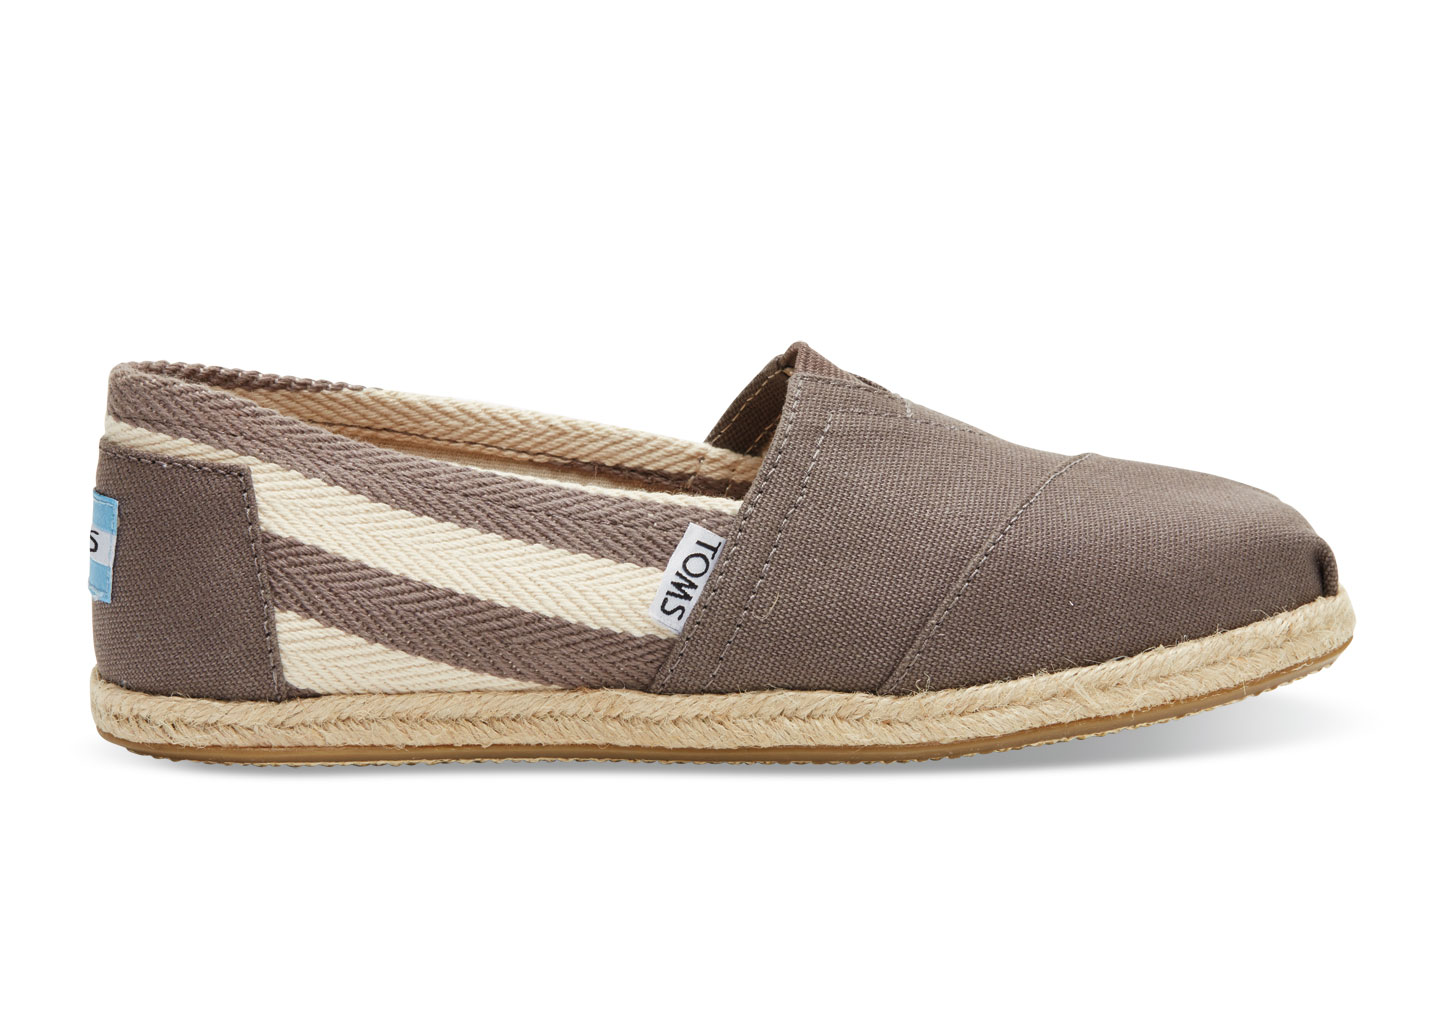 【TOMS】灰色寬條紋學院風平底鞋  Dark Grey Stripe University Women's Classics 2